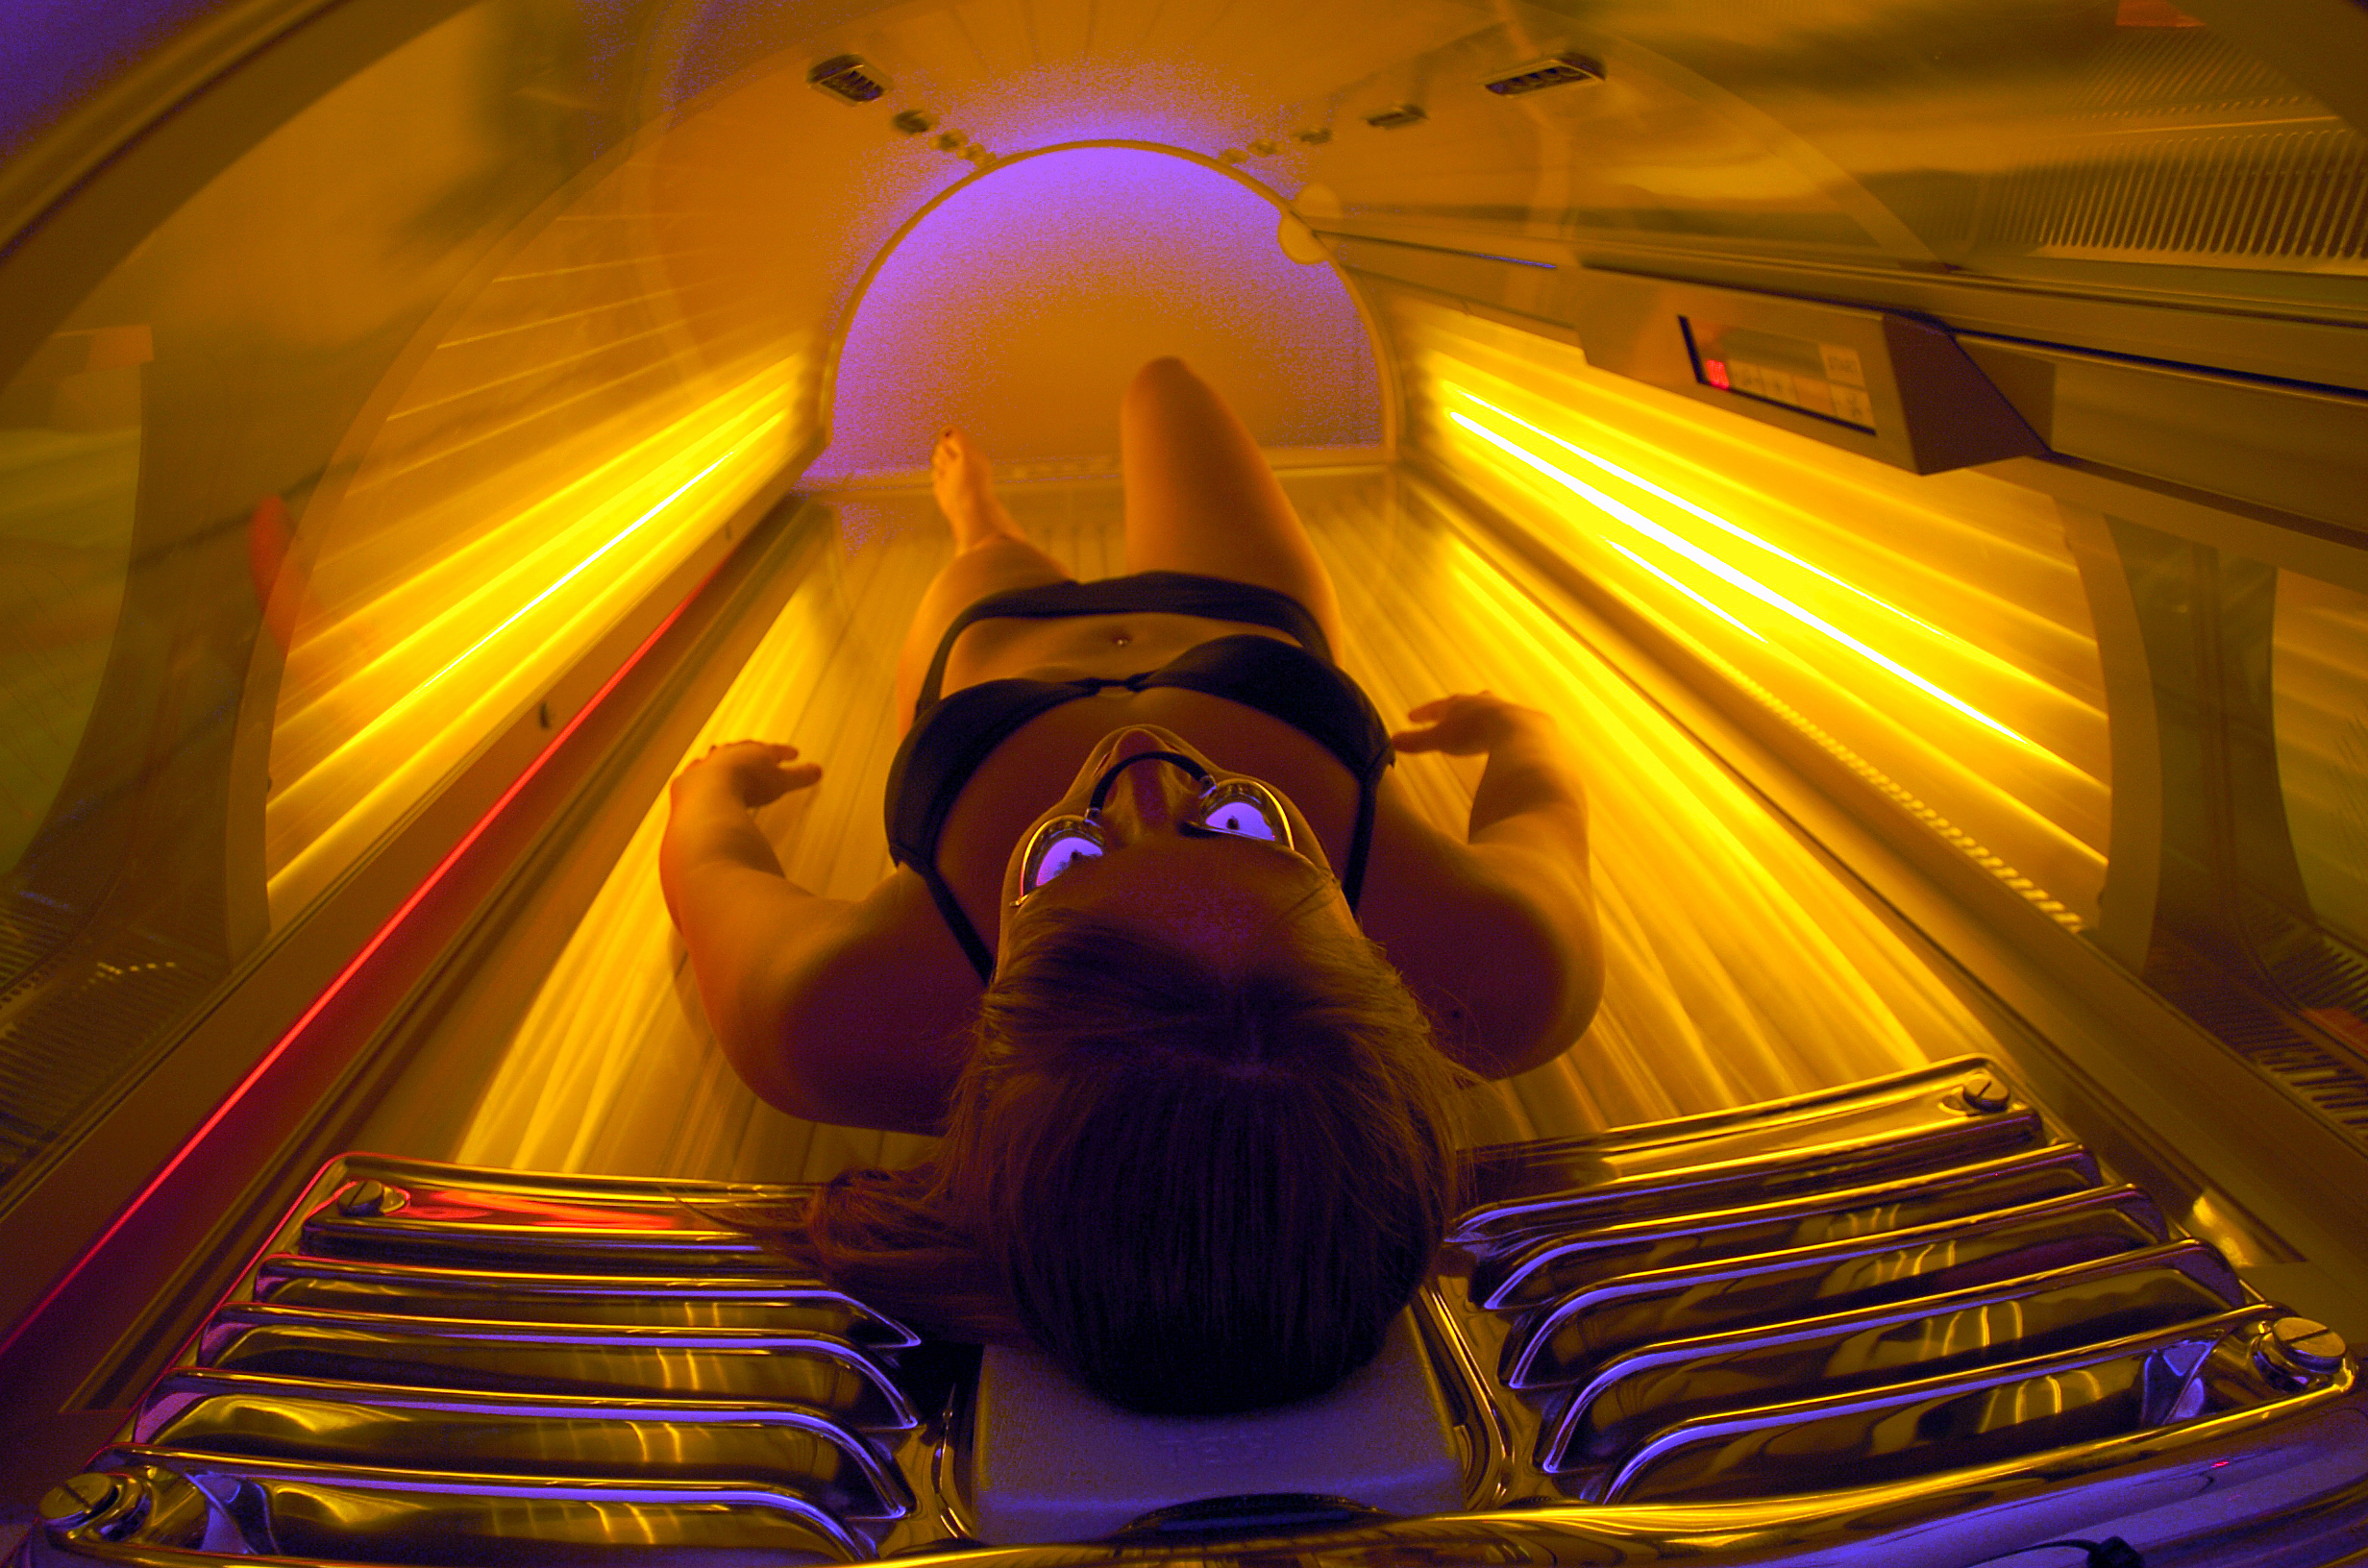 The Surgeon General's warning about tanning